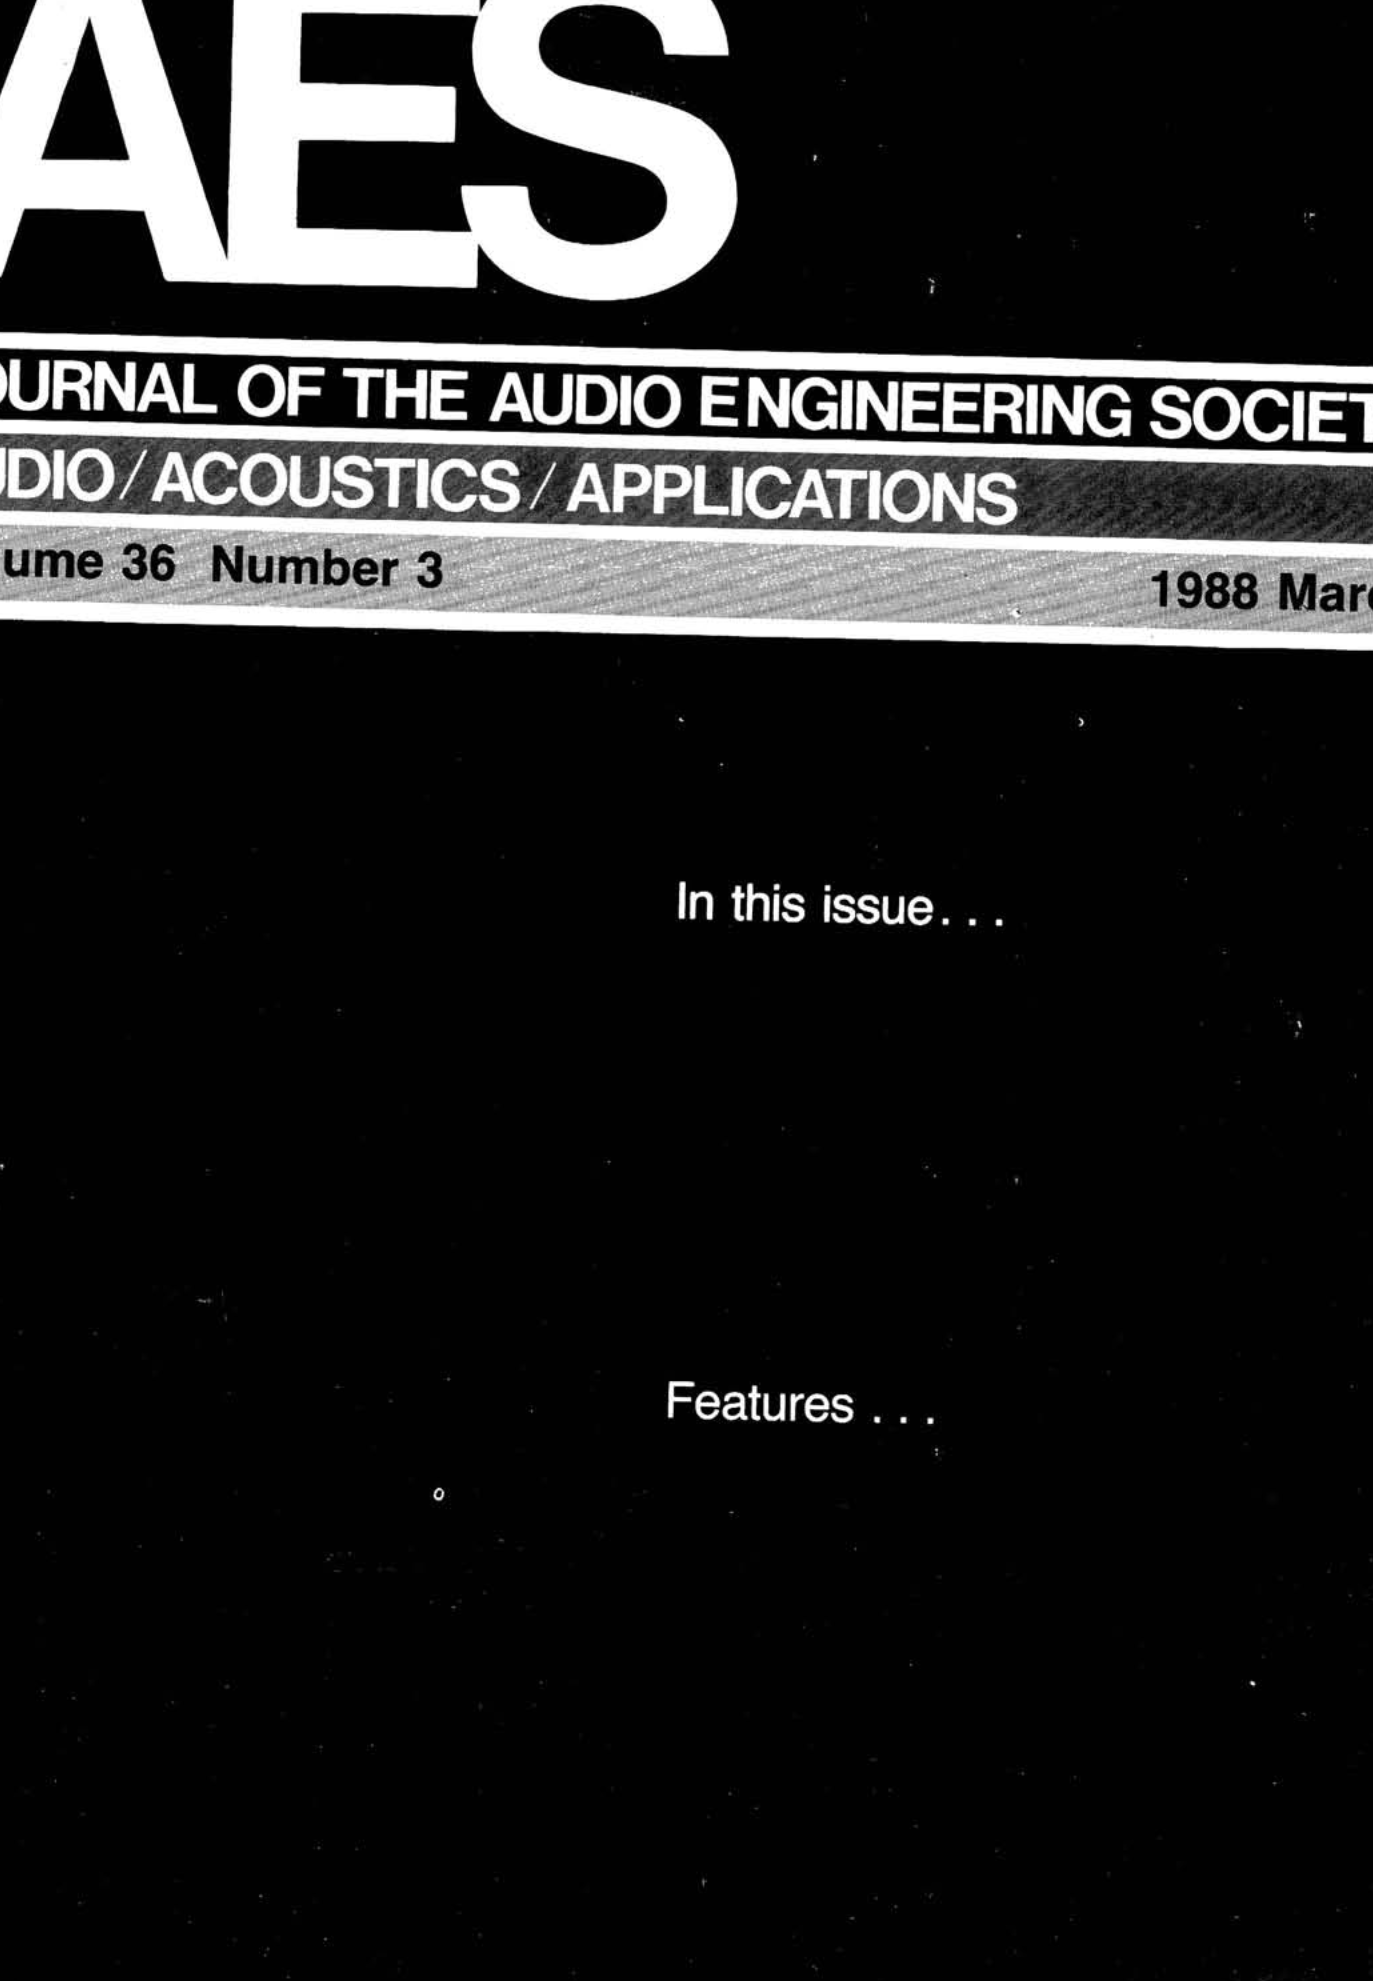 Aes E Library Complete Journal Volume 36 Issue 3 Flexible Printed Circuit Board Manufacturer 15 Day Turnaround Times